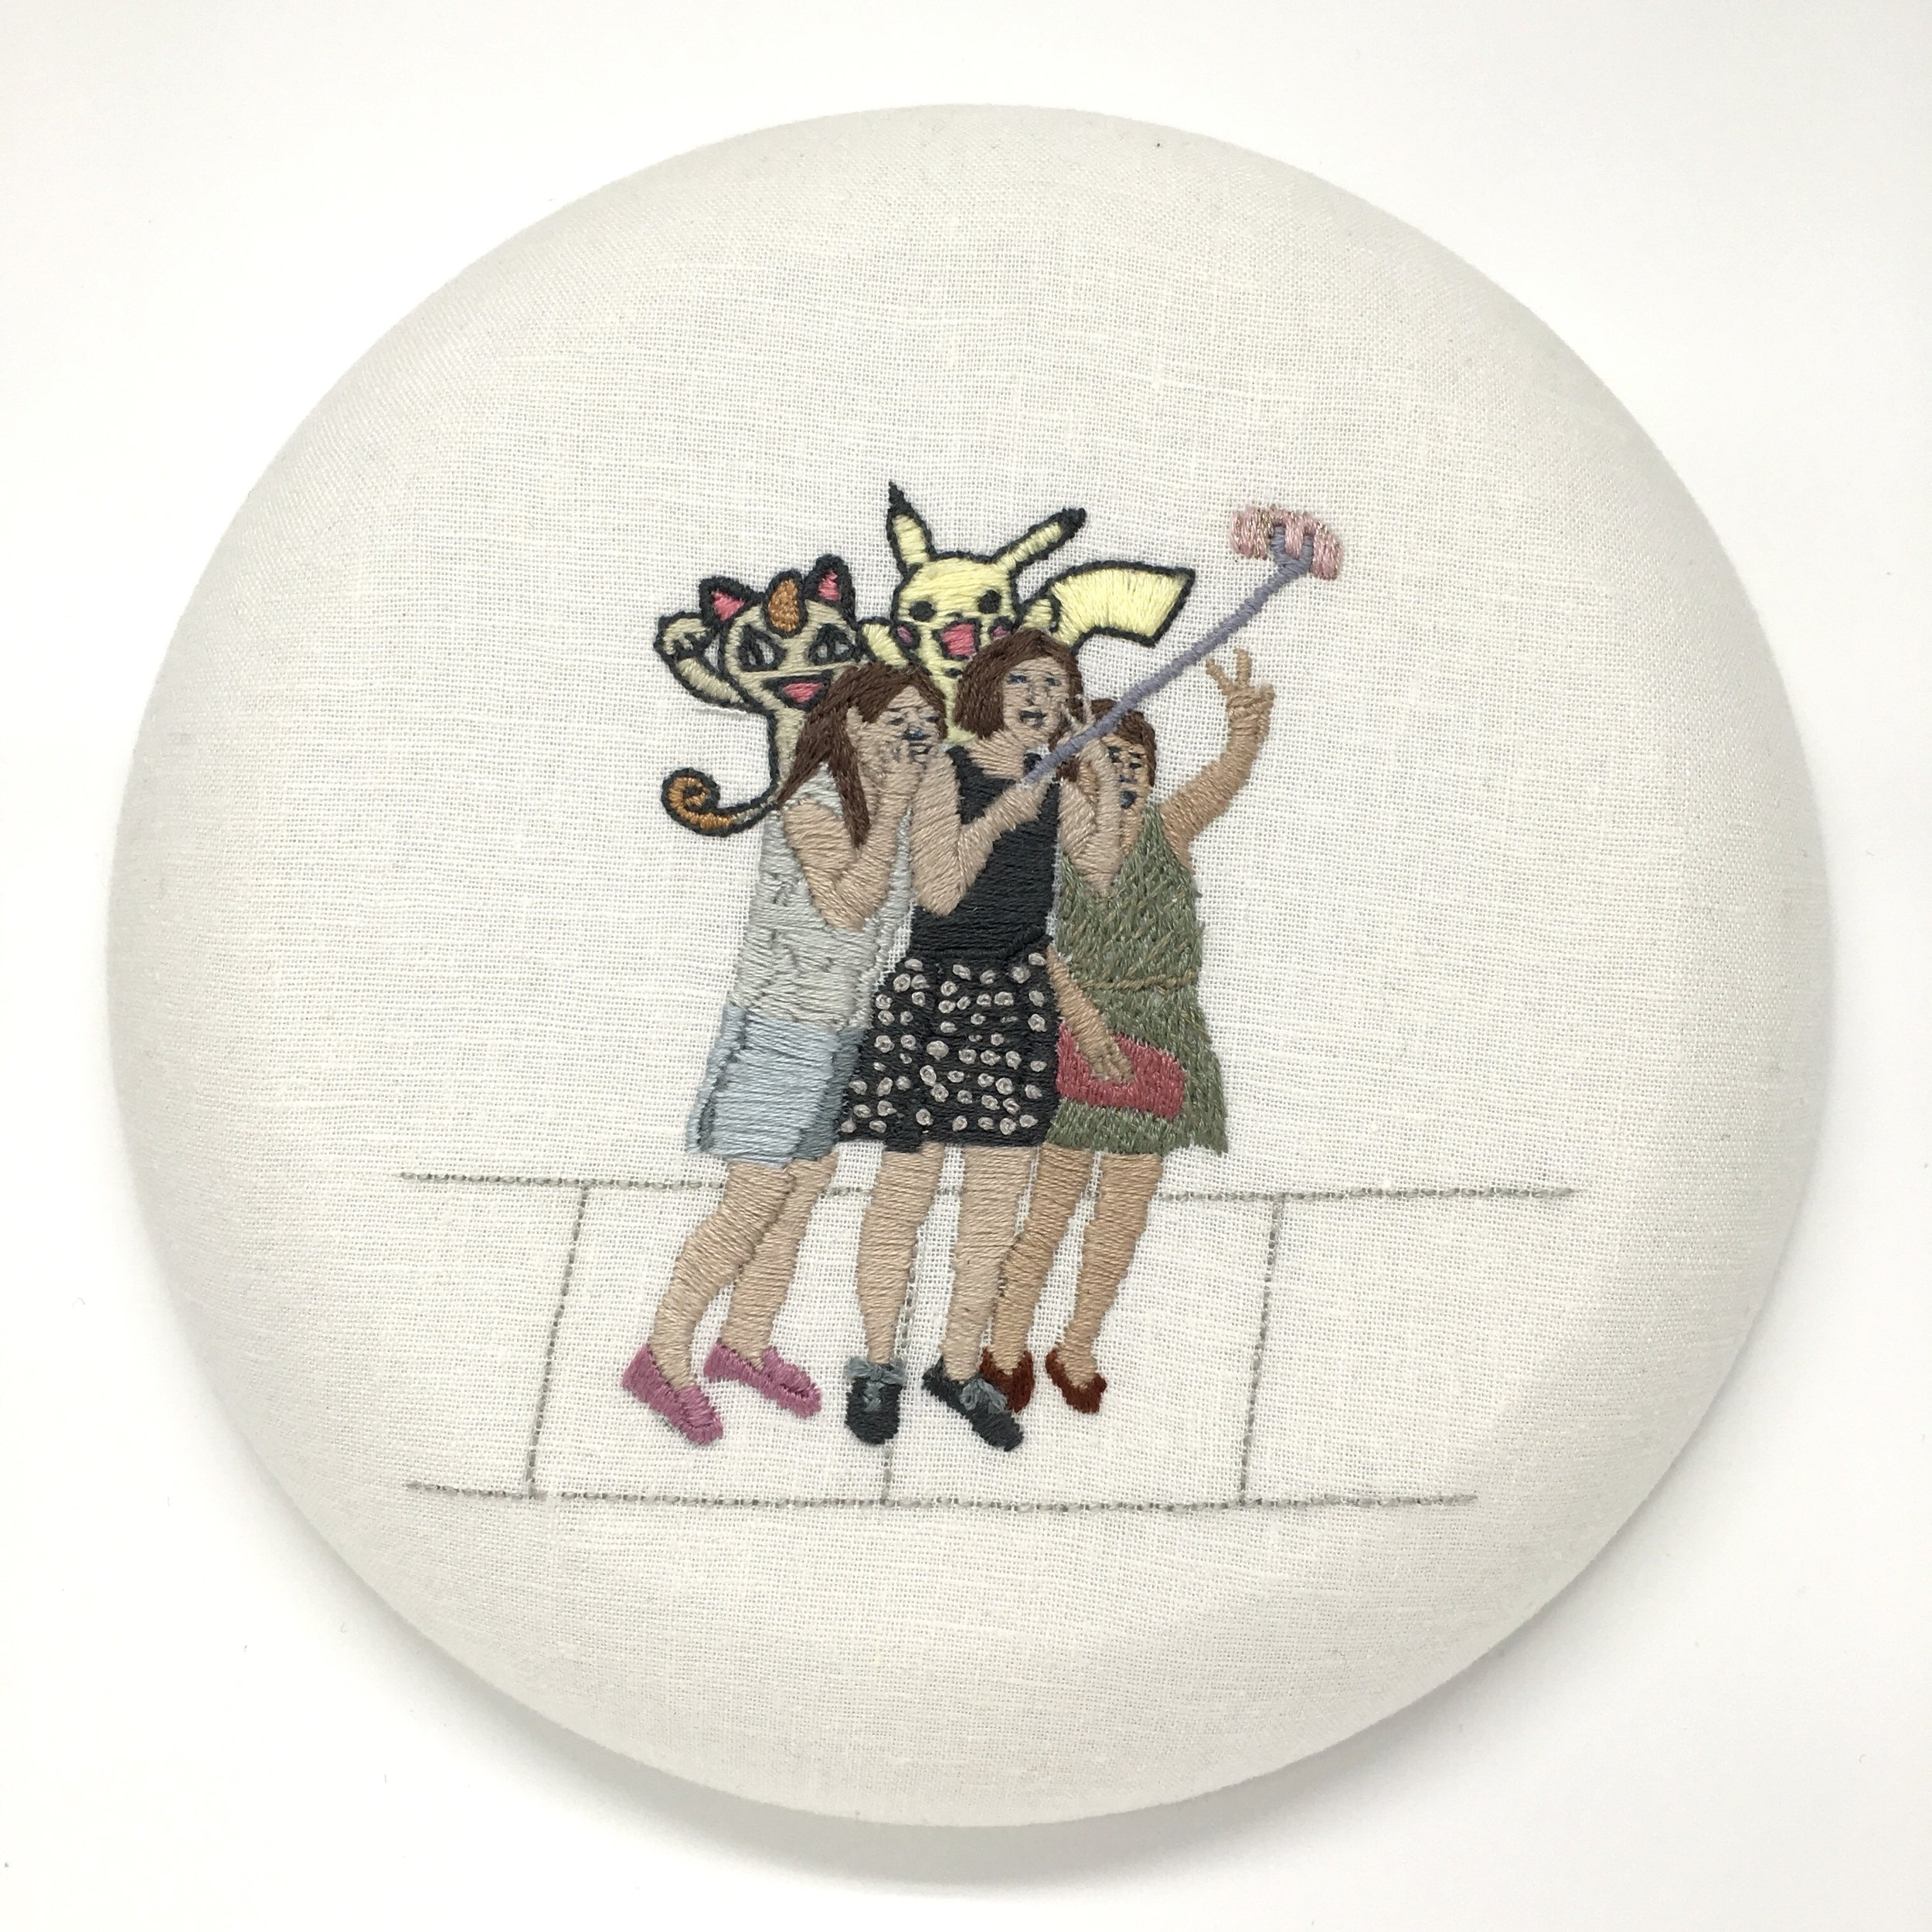 "Jennifer Noland  Susie, Helen and Kate (Meowth and Pikachu) , 2017 cotton muslin and embroidery floss 8"" diameter"